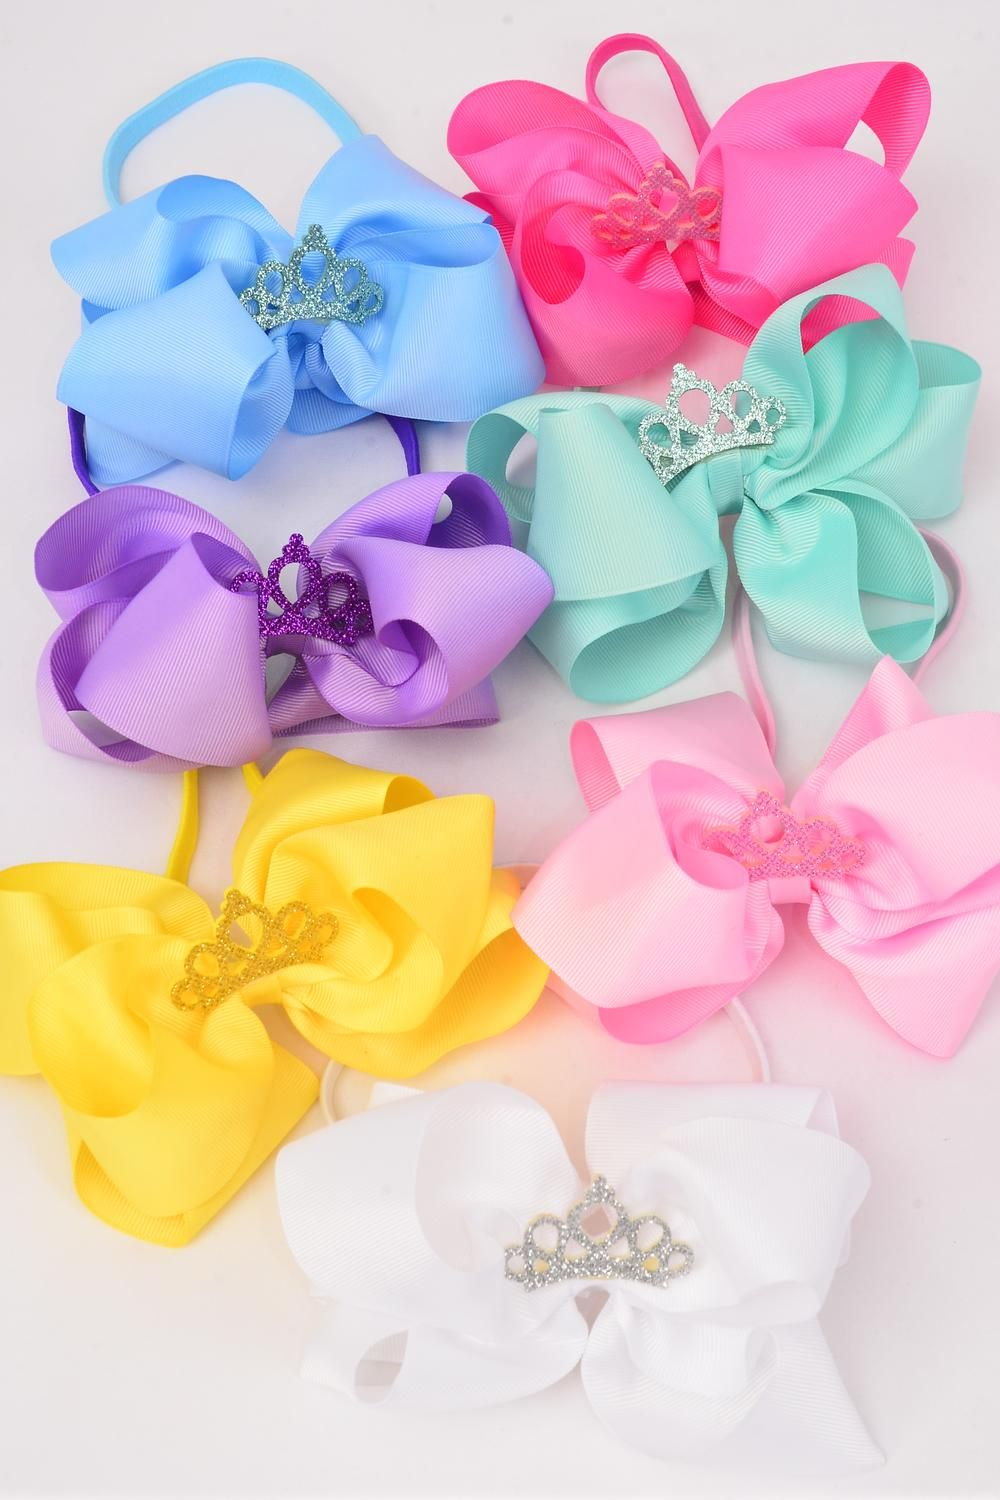 "Elastic Headband Jumbo Tiara Double Layer Bow Pastel Grosgrain Bow tie/DZ **Pastel** Elastic,Size-6""x 6"" Wide,2 Baby Pink,2 White,2 Yellow,2 Blue,2 Lavender,1 Hot Pink,1 Green 7 Color Asst,Hang Tag & UPC Code,Clear Box"